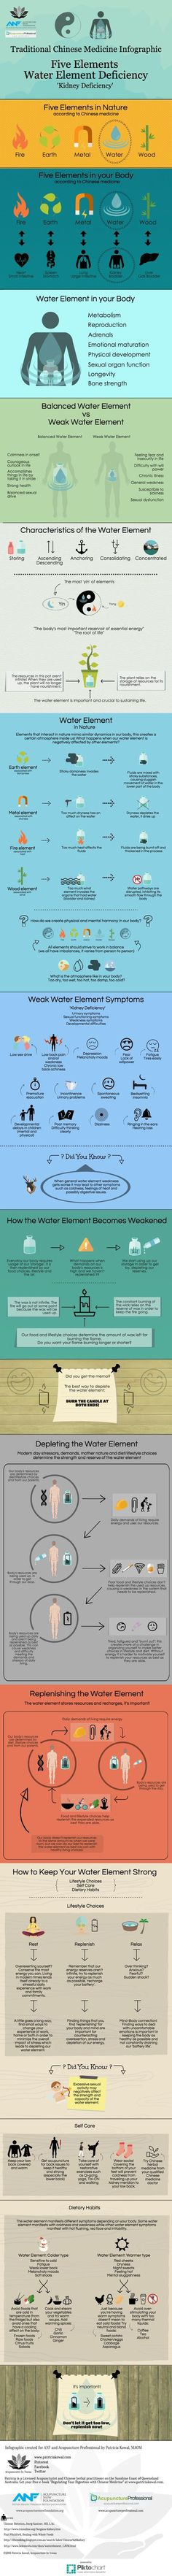 Water weakness (Chinese Medicine Infographic) | Piktochart Infographic Editor